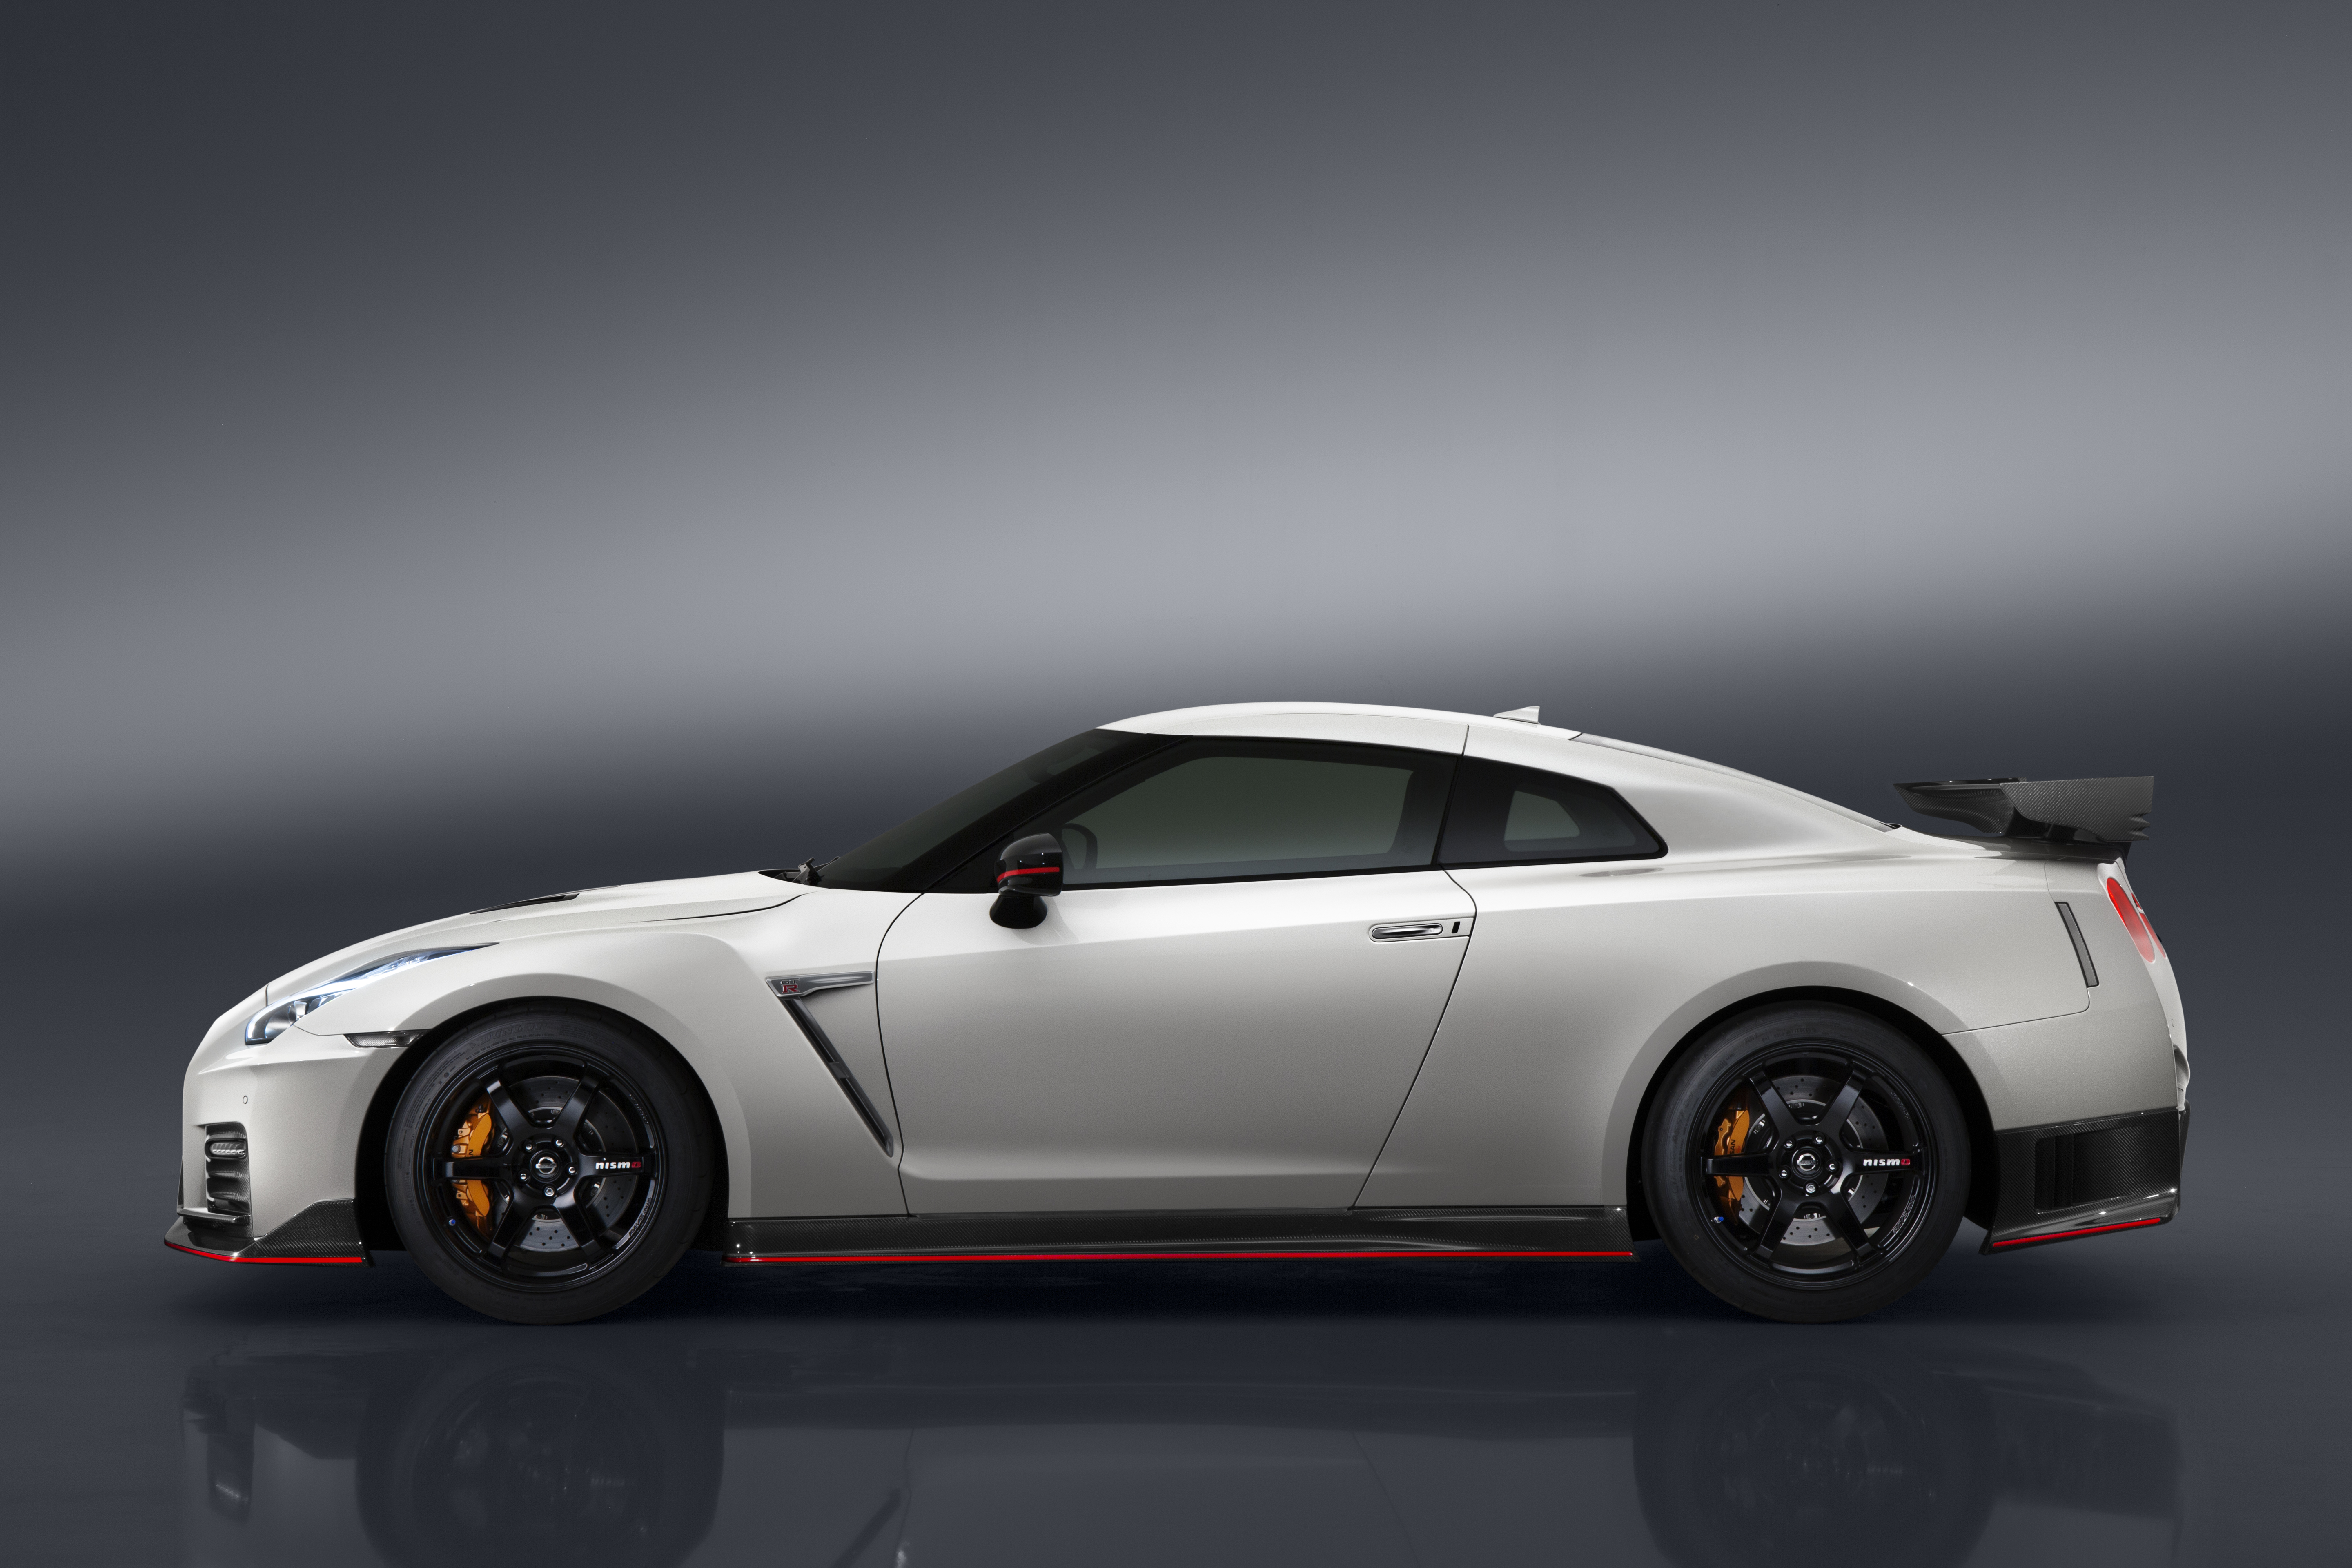 2017 nissan gtr nismo gallery - the verge